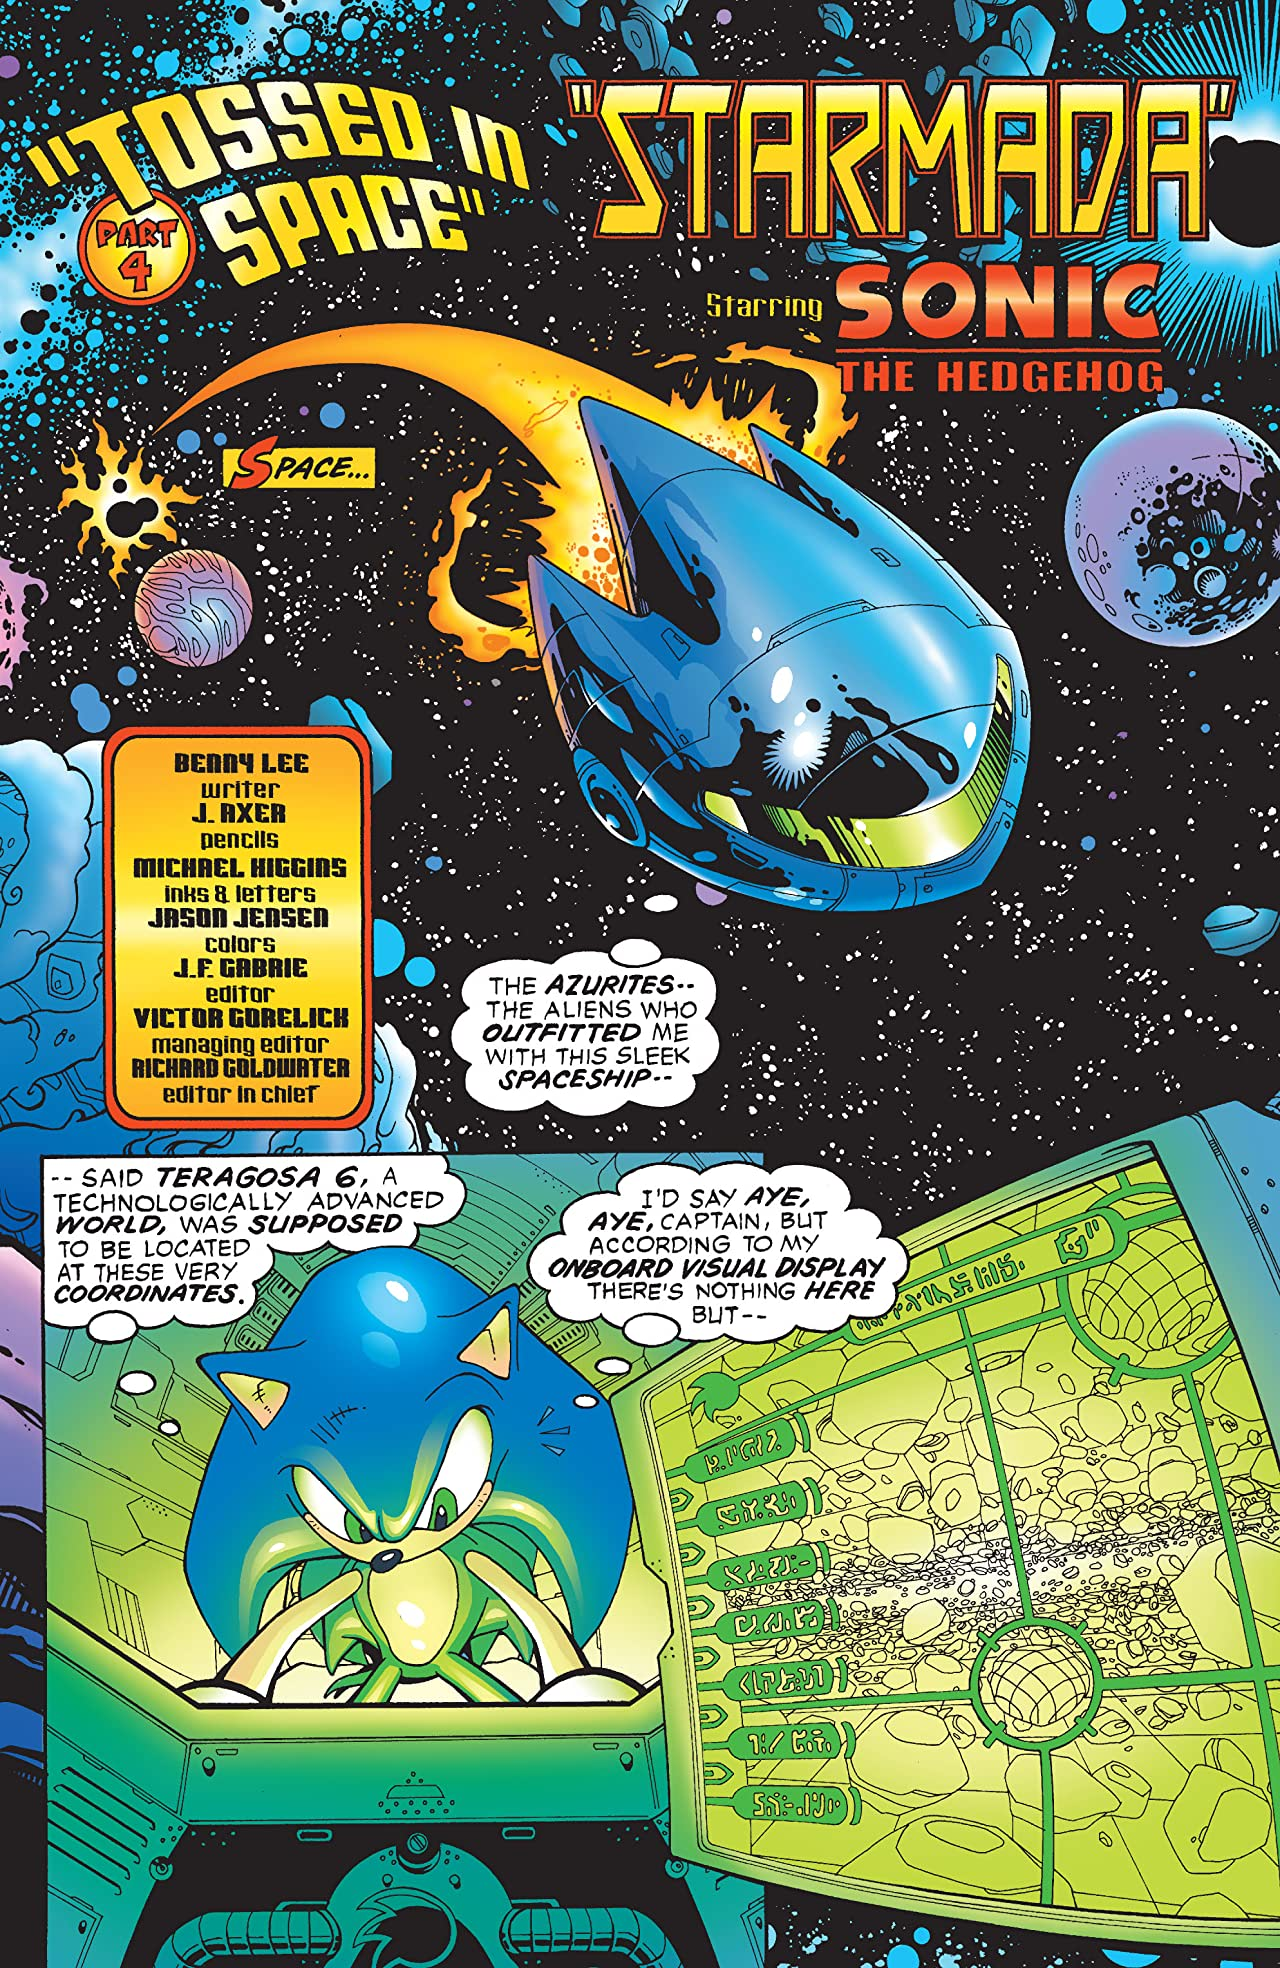 Sonic the Hedgehog #128